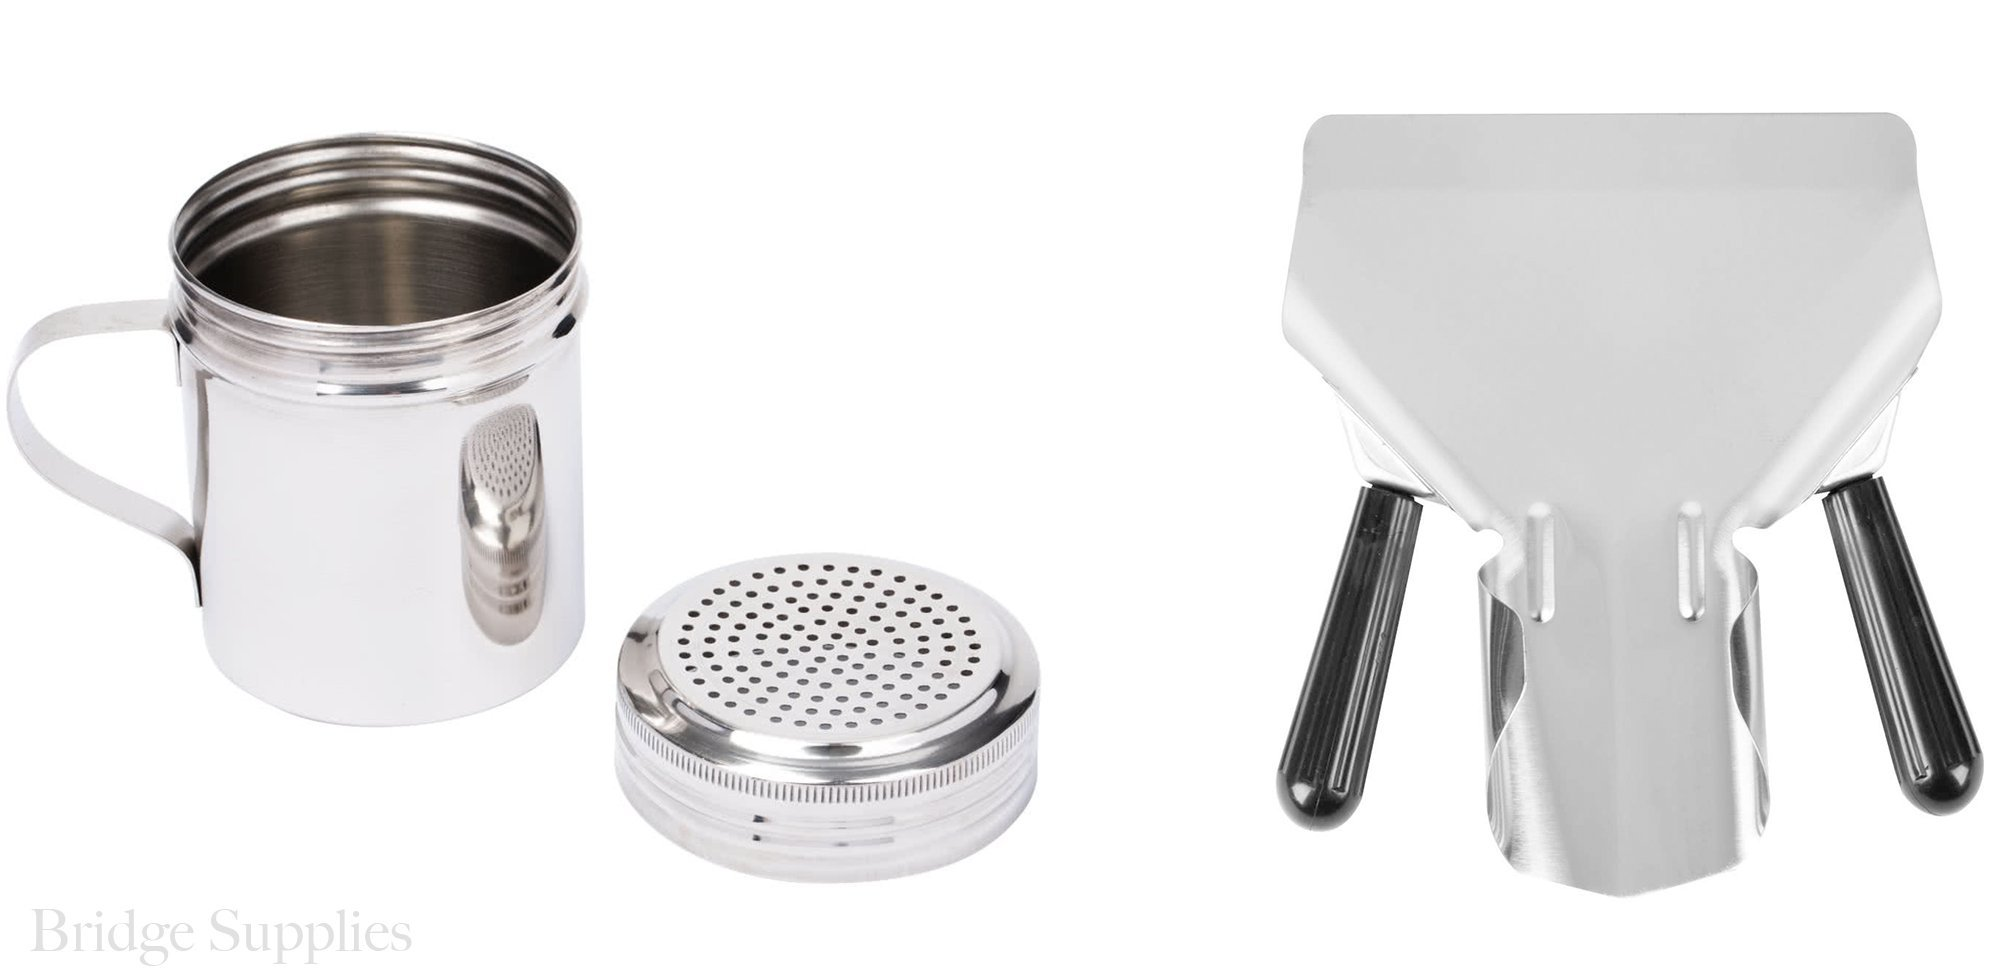 Combo Stainless Steel Dredge 10-Ounce with Handle and Stainless Steel Commercial French Fry Bagger, Dual Handle. 10 Oz Shaker and Scoop Set, perfect for Popcorn and French fries